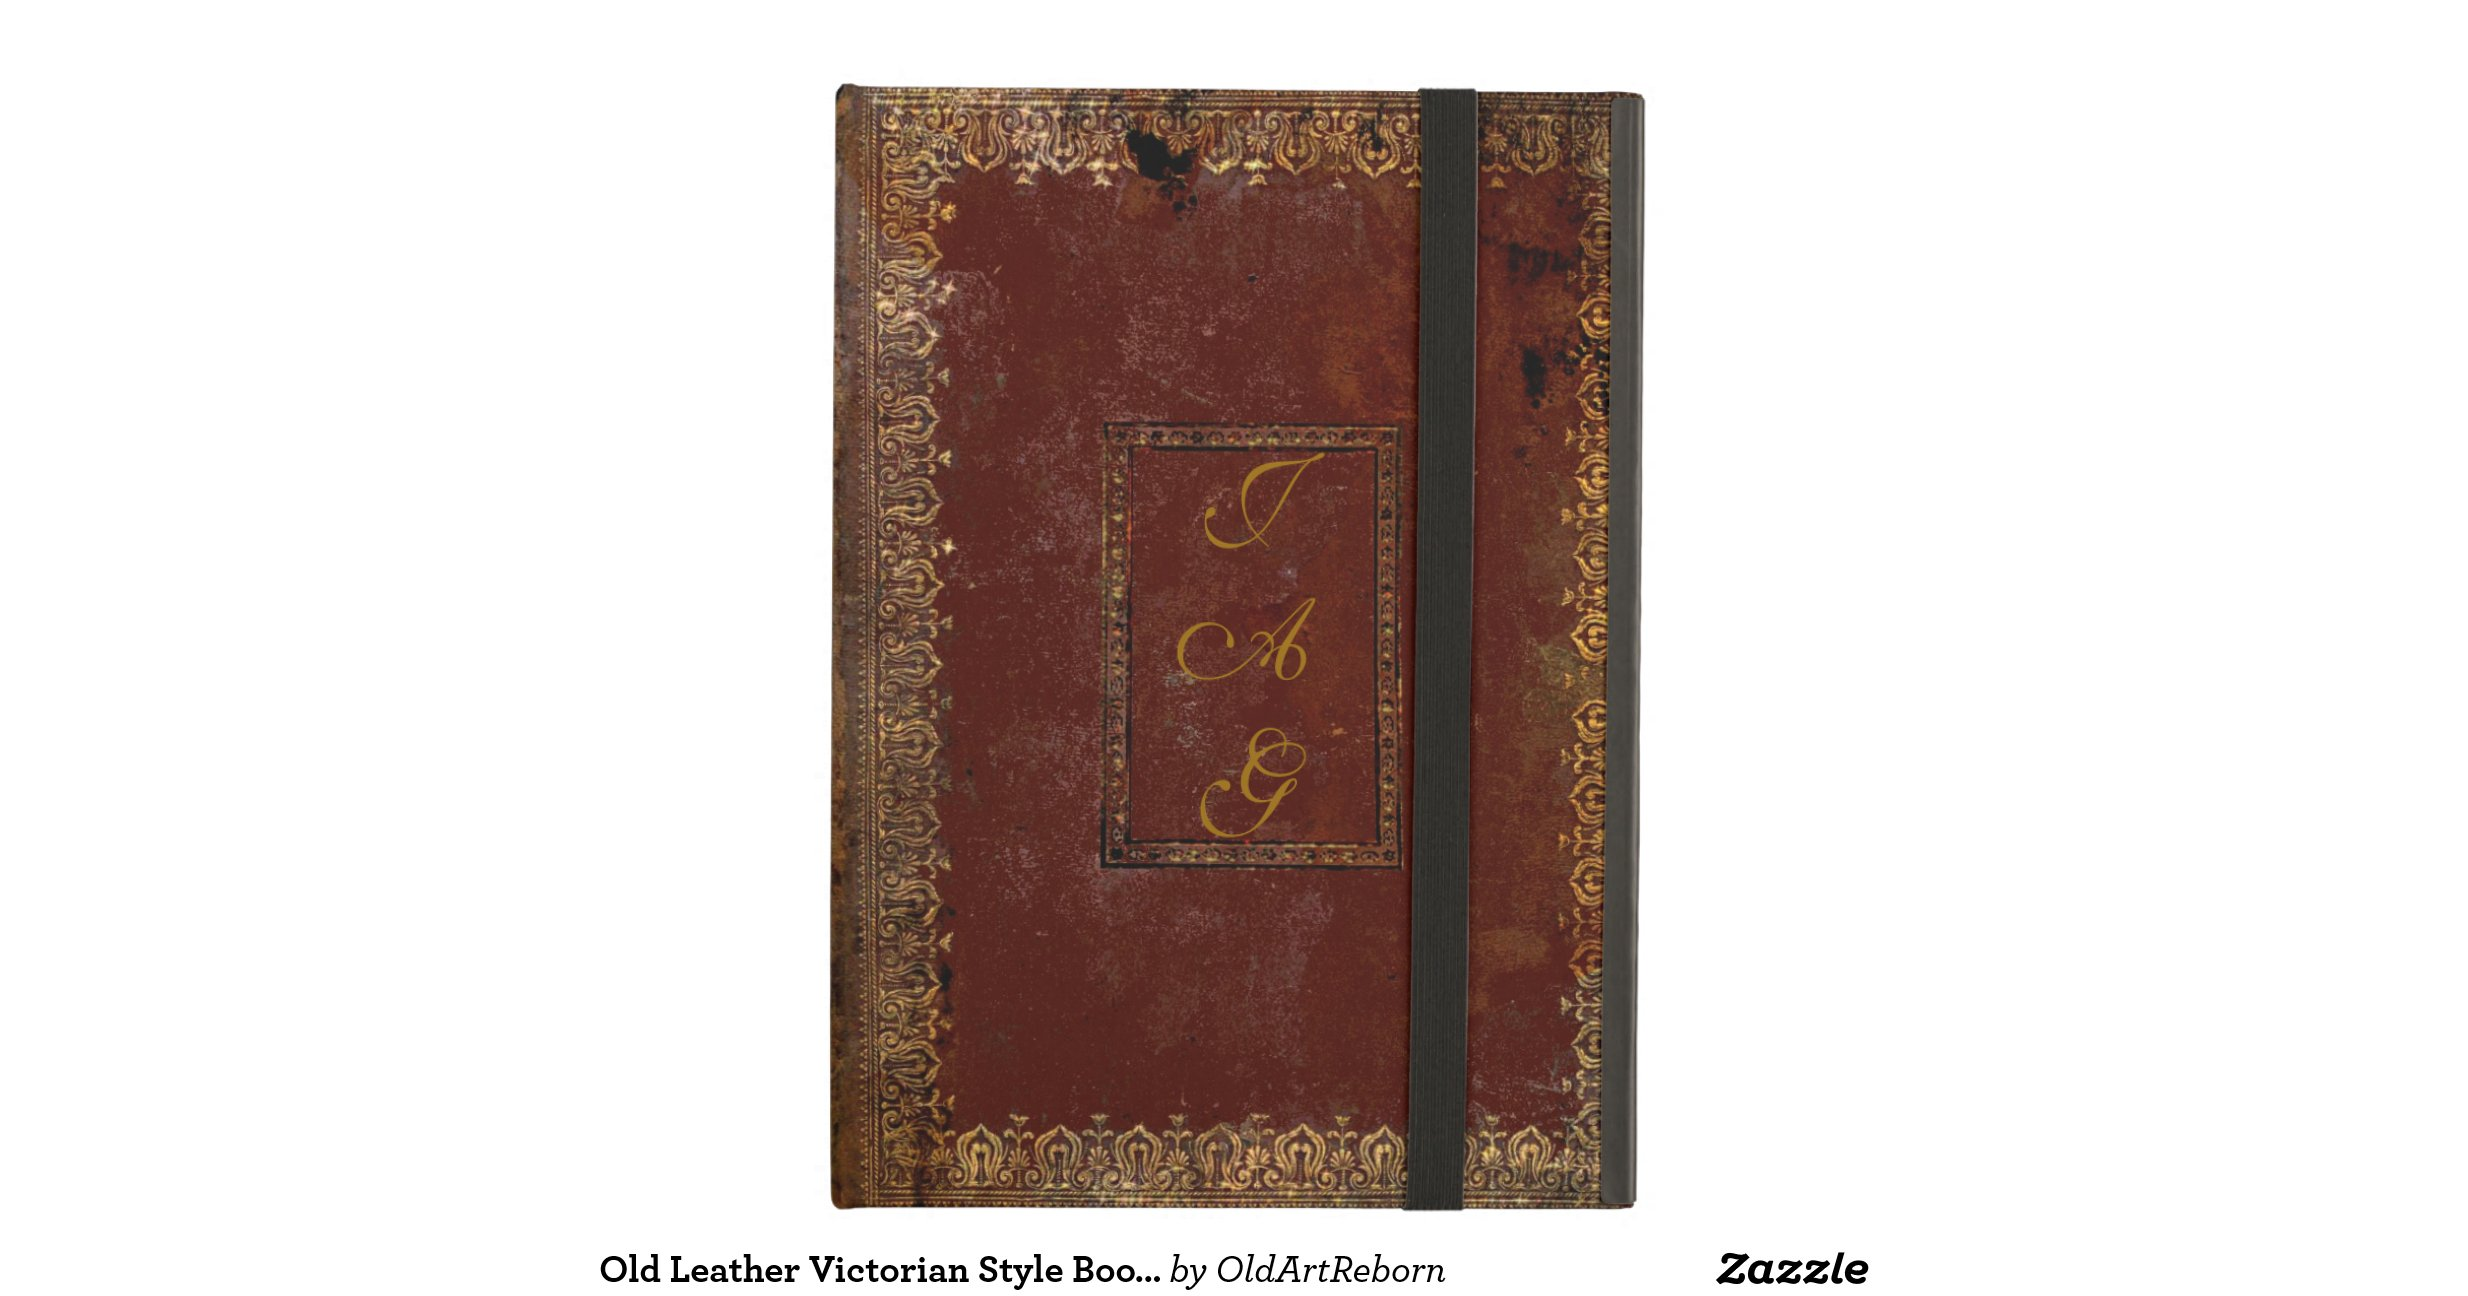 Old Looking Book Cover : Old leather victorian style book cover ipad air case zazzle